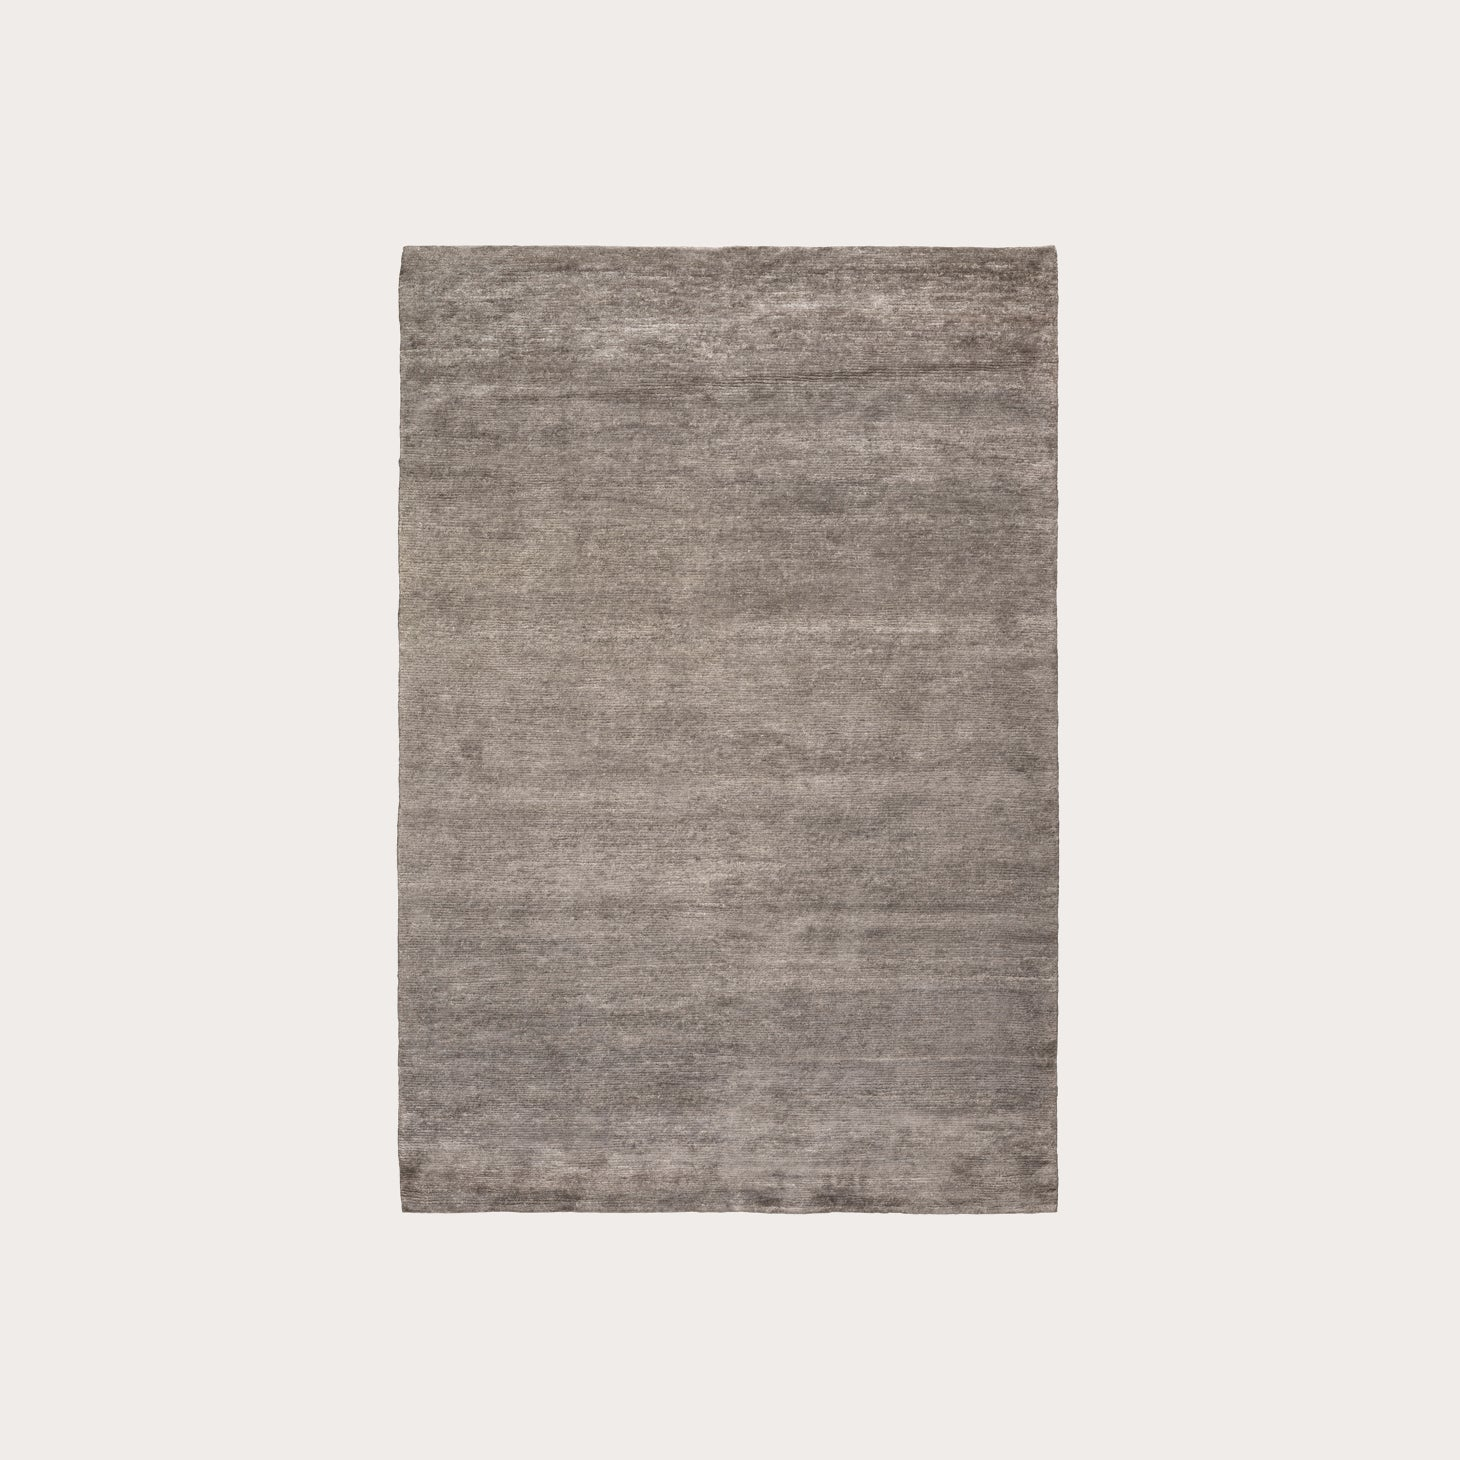 Bamboo Silk Silver Floor Coverings The Rug Company Designer Furniture Sku: 391-150-10869